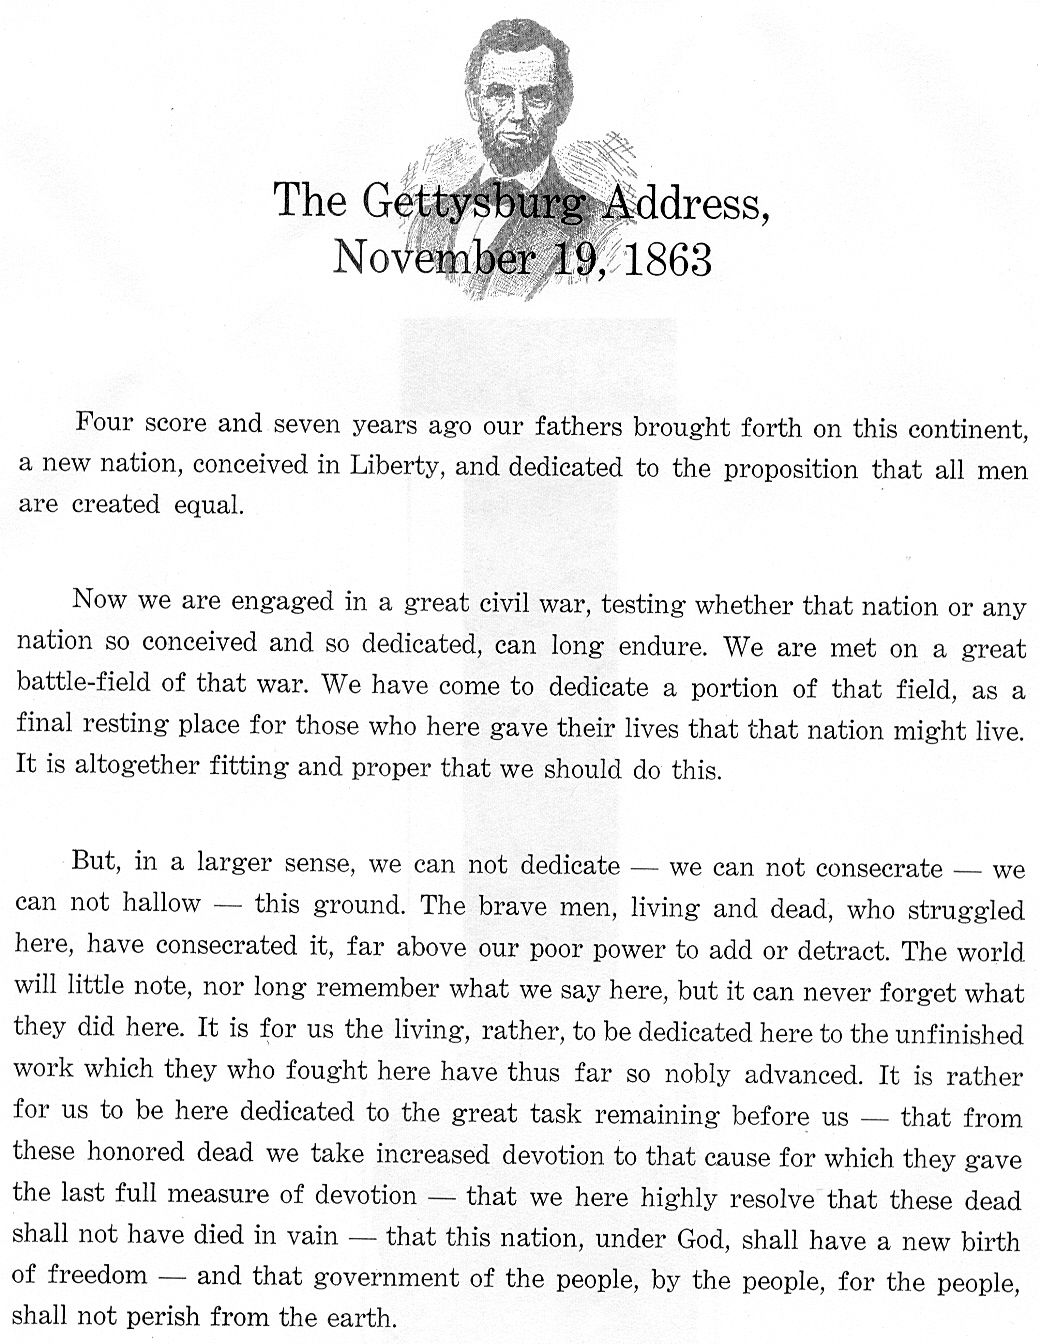 Worksheet Gettysburg Address Worksheet Grass Fedjp Worksheet Study Site